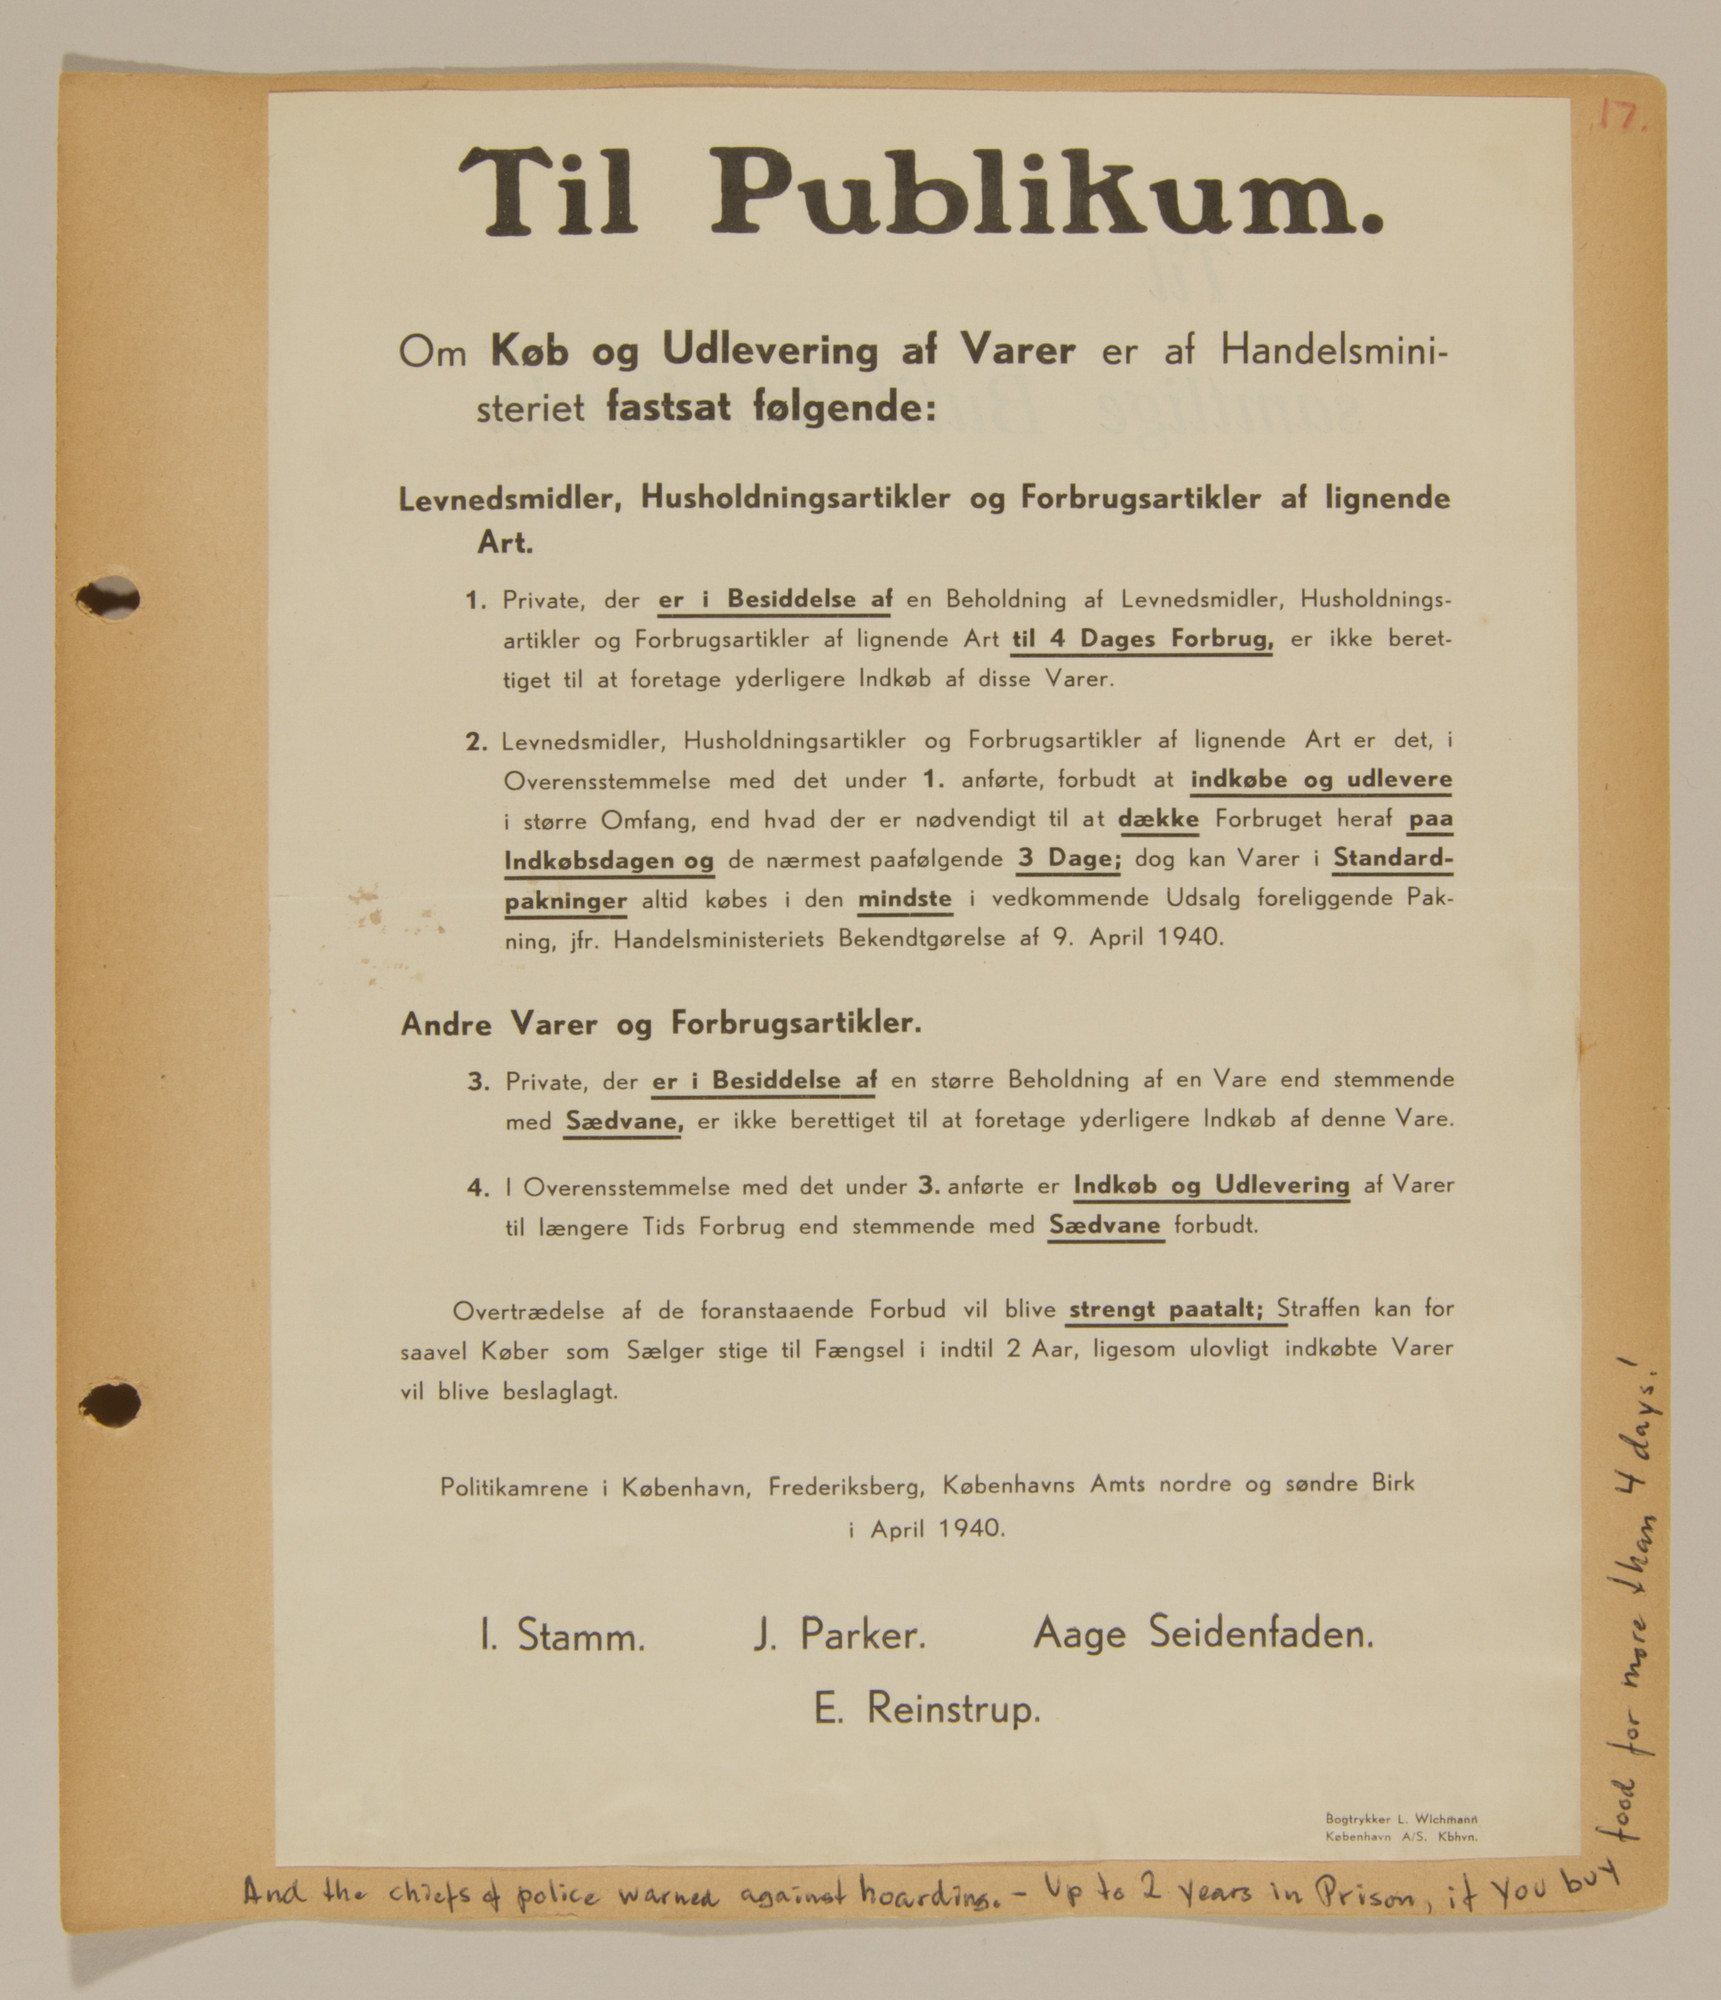 Page from volume one of a set of scrapbooks compiled by Bjorn Sibbern, a Danish policeman and resistance member, documenting the German occupation of Denmark.  This page contains a letter by the chiefs of police warning against hoarding.